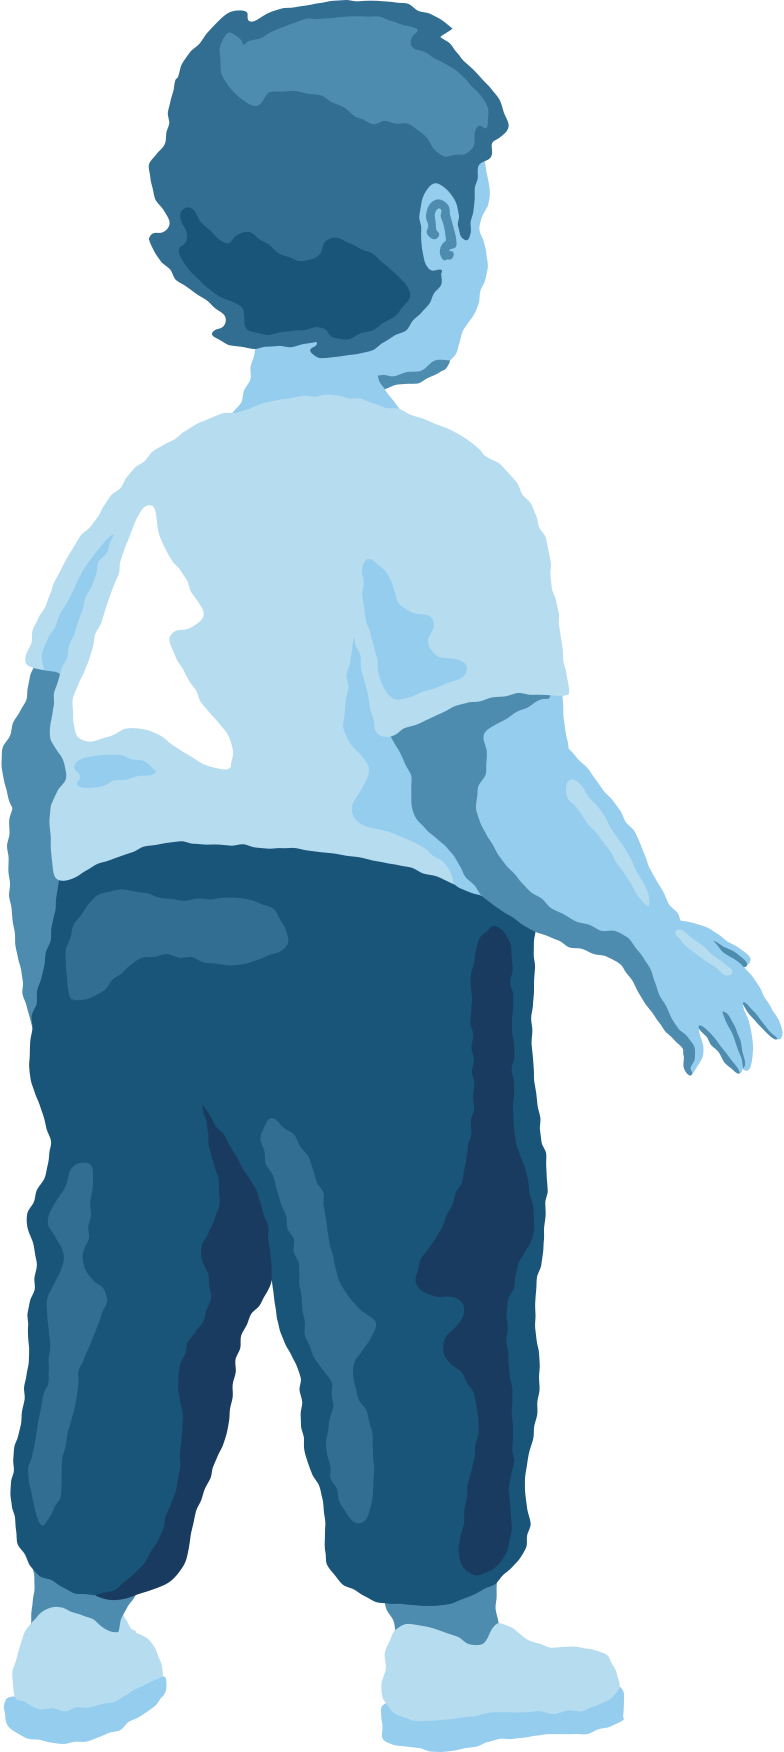 style chubby boy standing back Vector images in PNG and SVG | Icons8 Illustrations